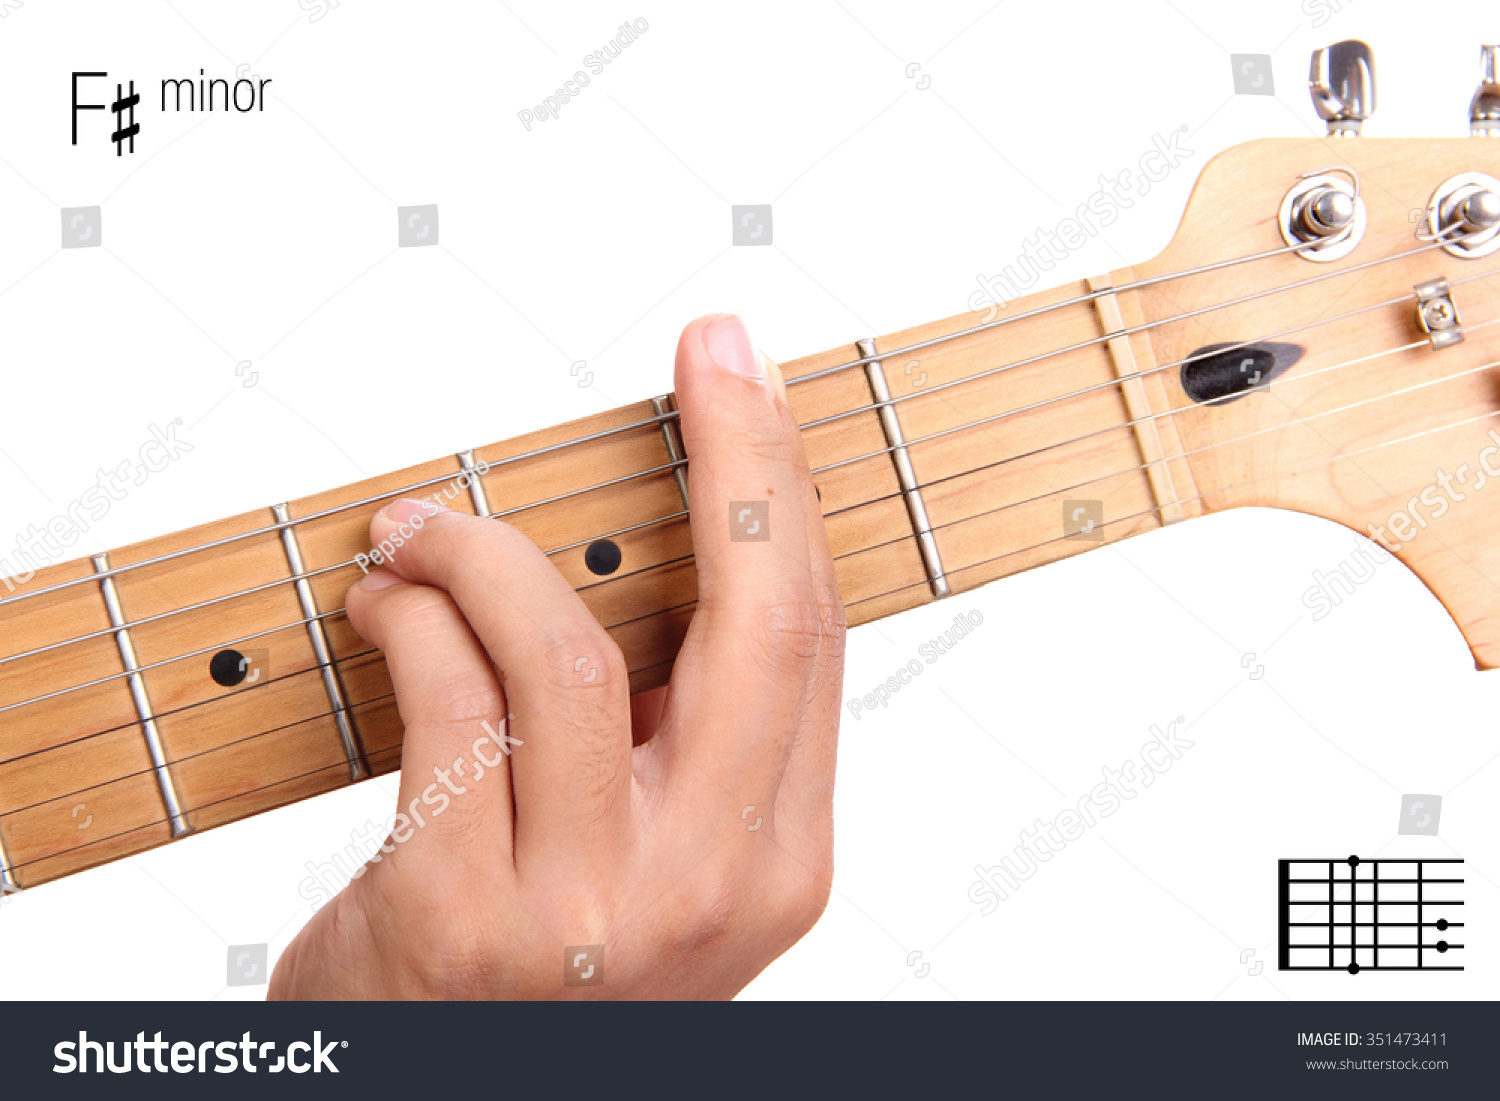 Fm Basic Minor Keys Guitar Tutorial Stock Photo Edit Now 351473411